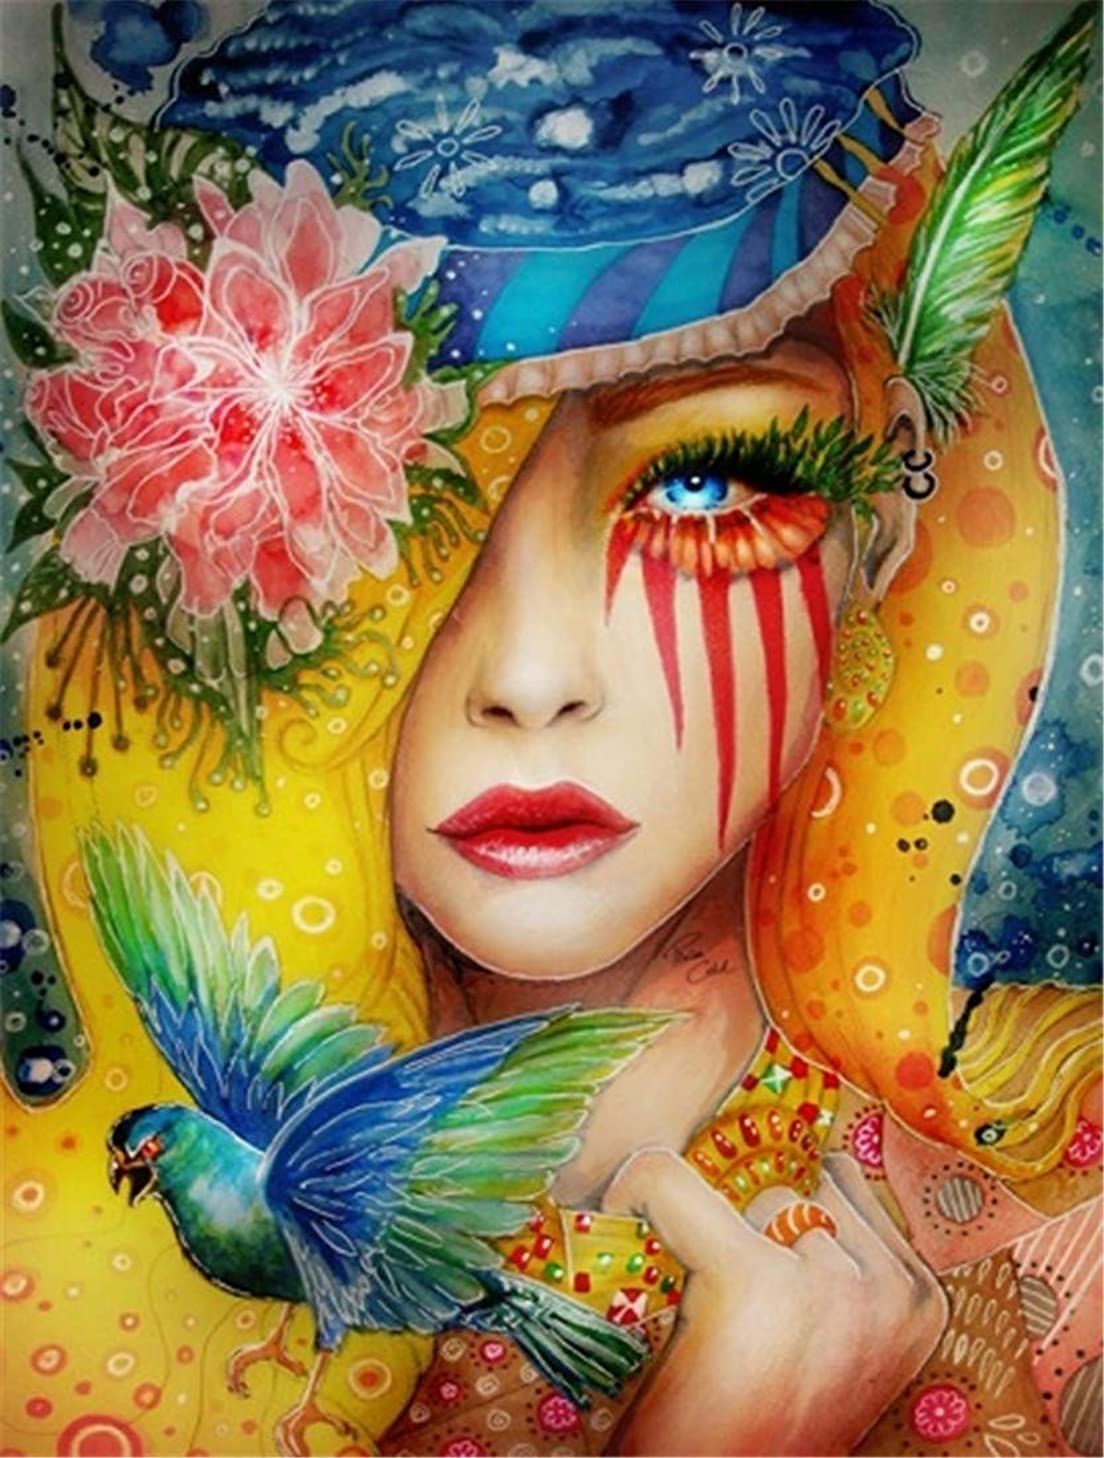 DIY Oil Painting Paint by Number Kit for Kids Adults Beginner 16x20 inch - Mysterious Woman, Drawing with Brushes Christmas Decor Decorations Gifts (Without Frame)